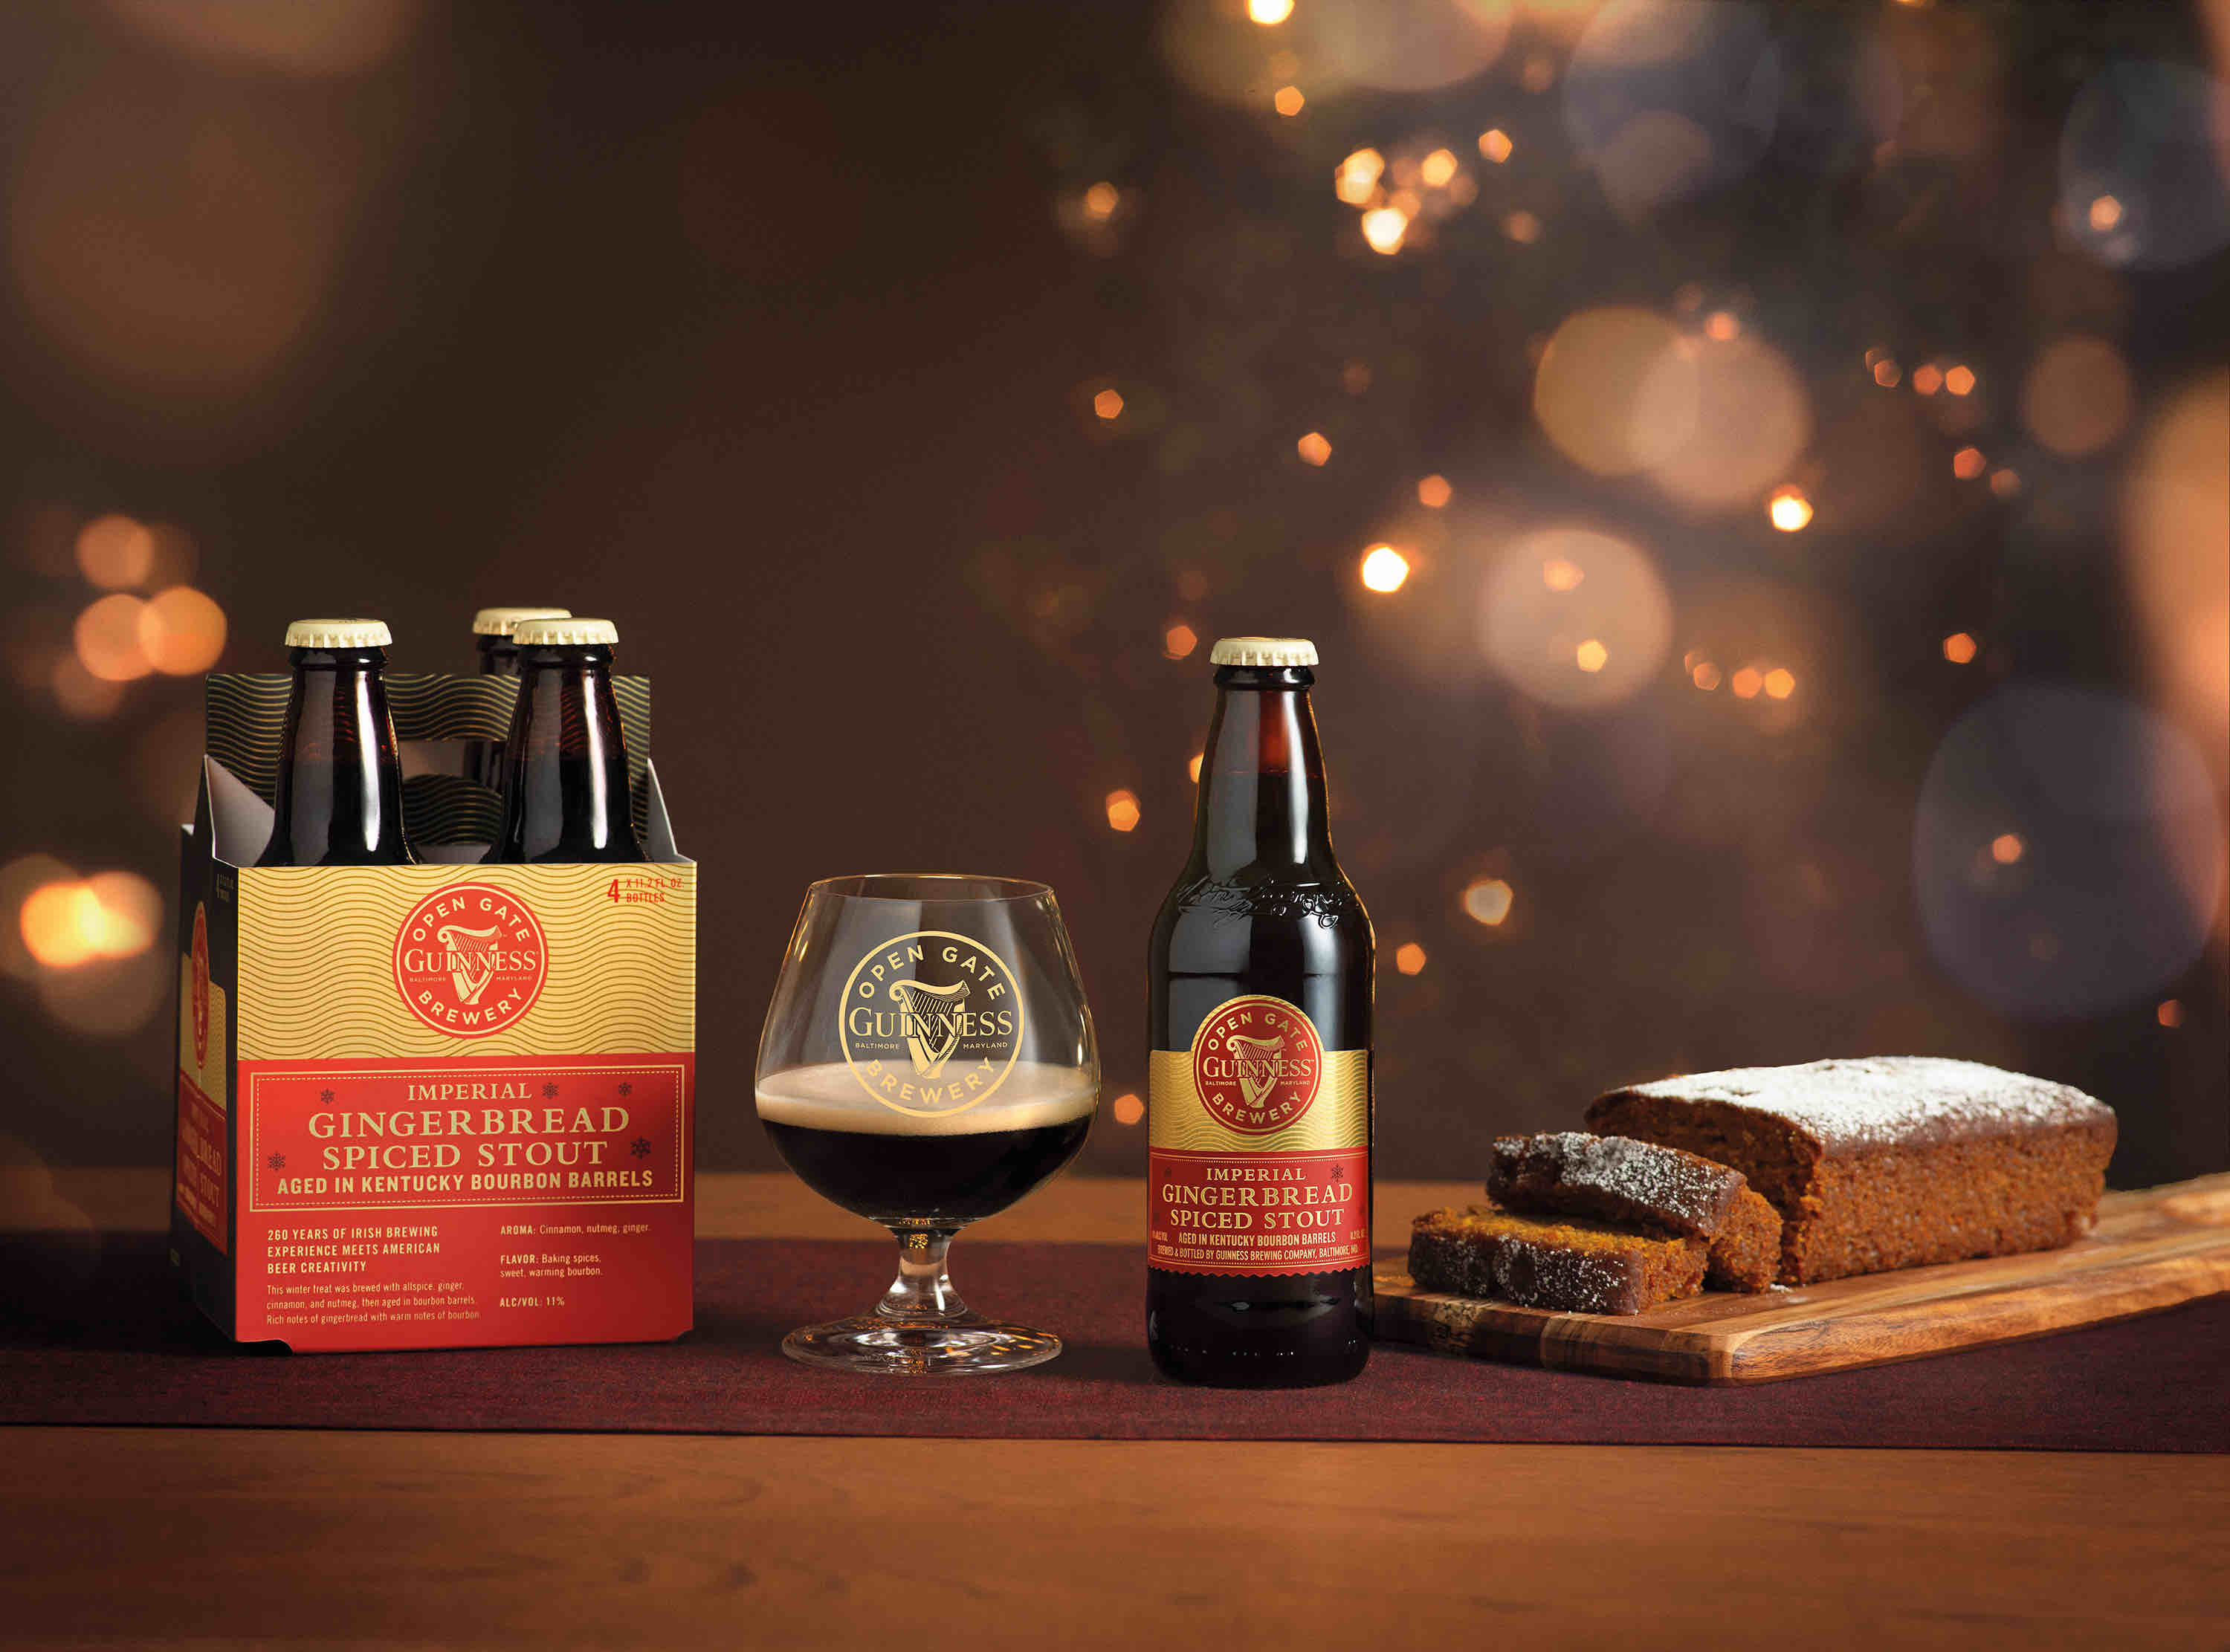 image of Guinness Imperial Gingerbread Spiced Stout courtesy of Guinness